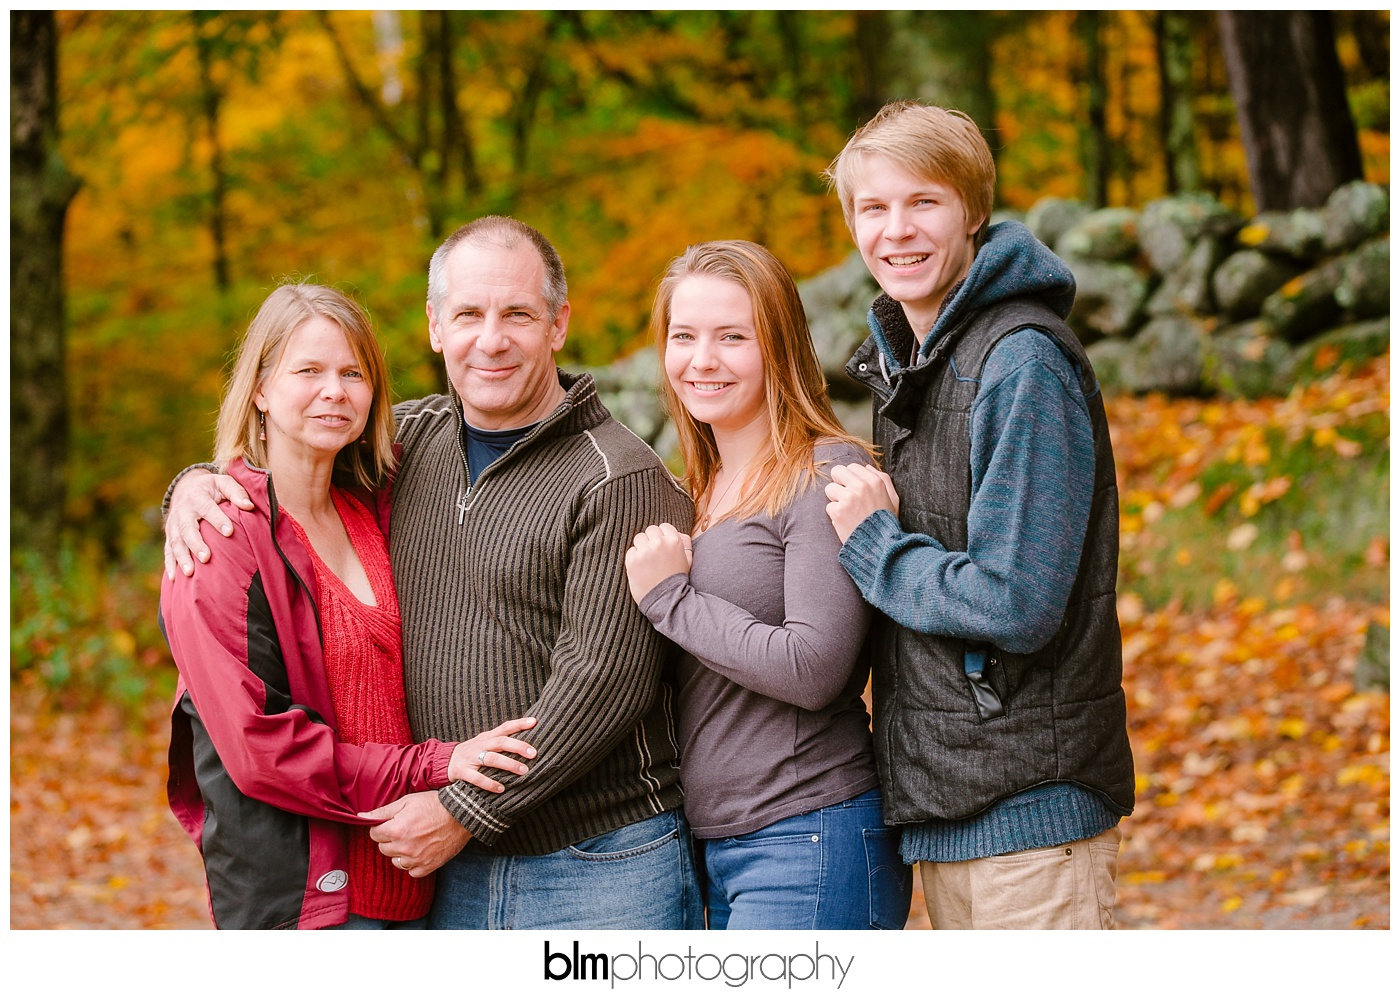 BLM,Brianna Morrissey,Brie Morrissey,Candid,Family Photography,Family Portraits,Harris Center,Lifestyle,Lifestyle Family Photography,Natural Light,Oct,October,Outdoor Photography,Photo,Photographer,Photography,Ruutopold Family,Ruutopold-Family,www.blmphoto.com/contact,©BLM Photography 2016,